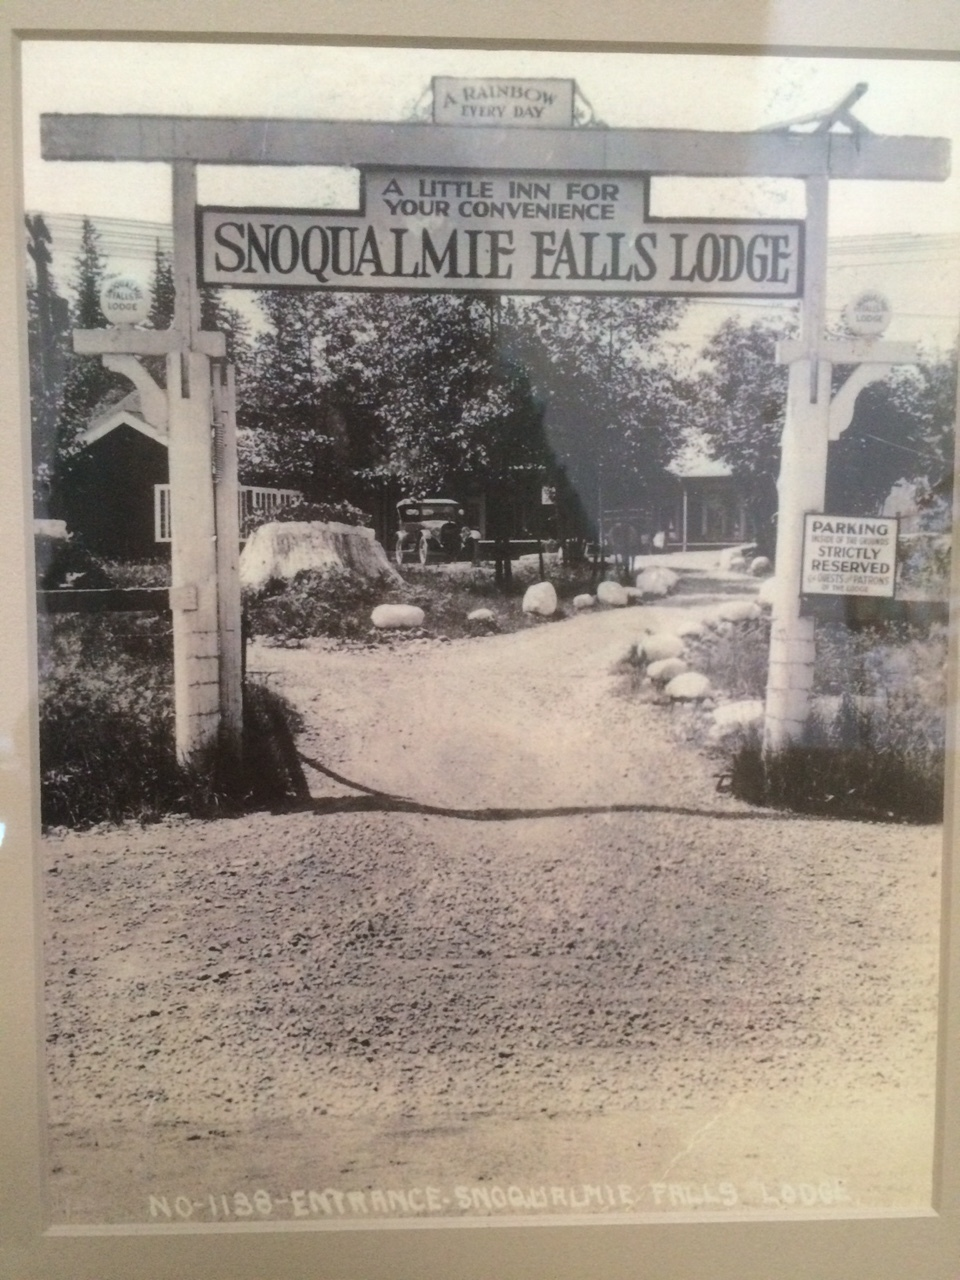 Salish Lodge back in the day!